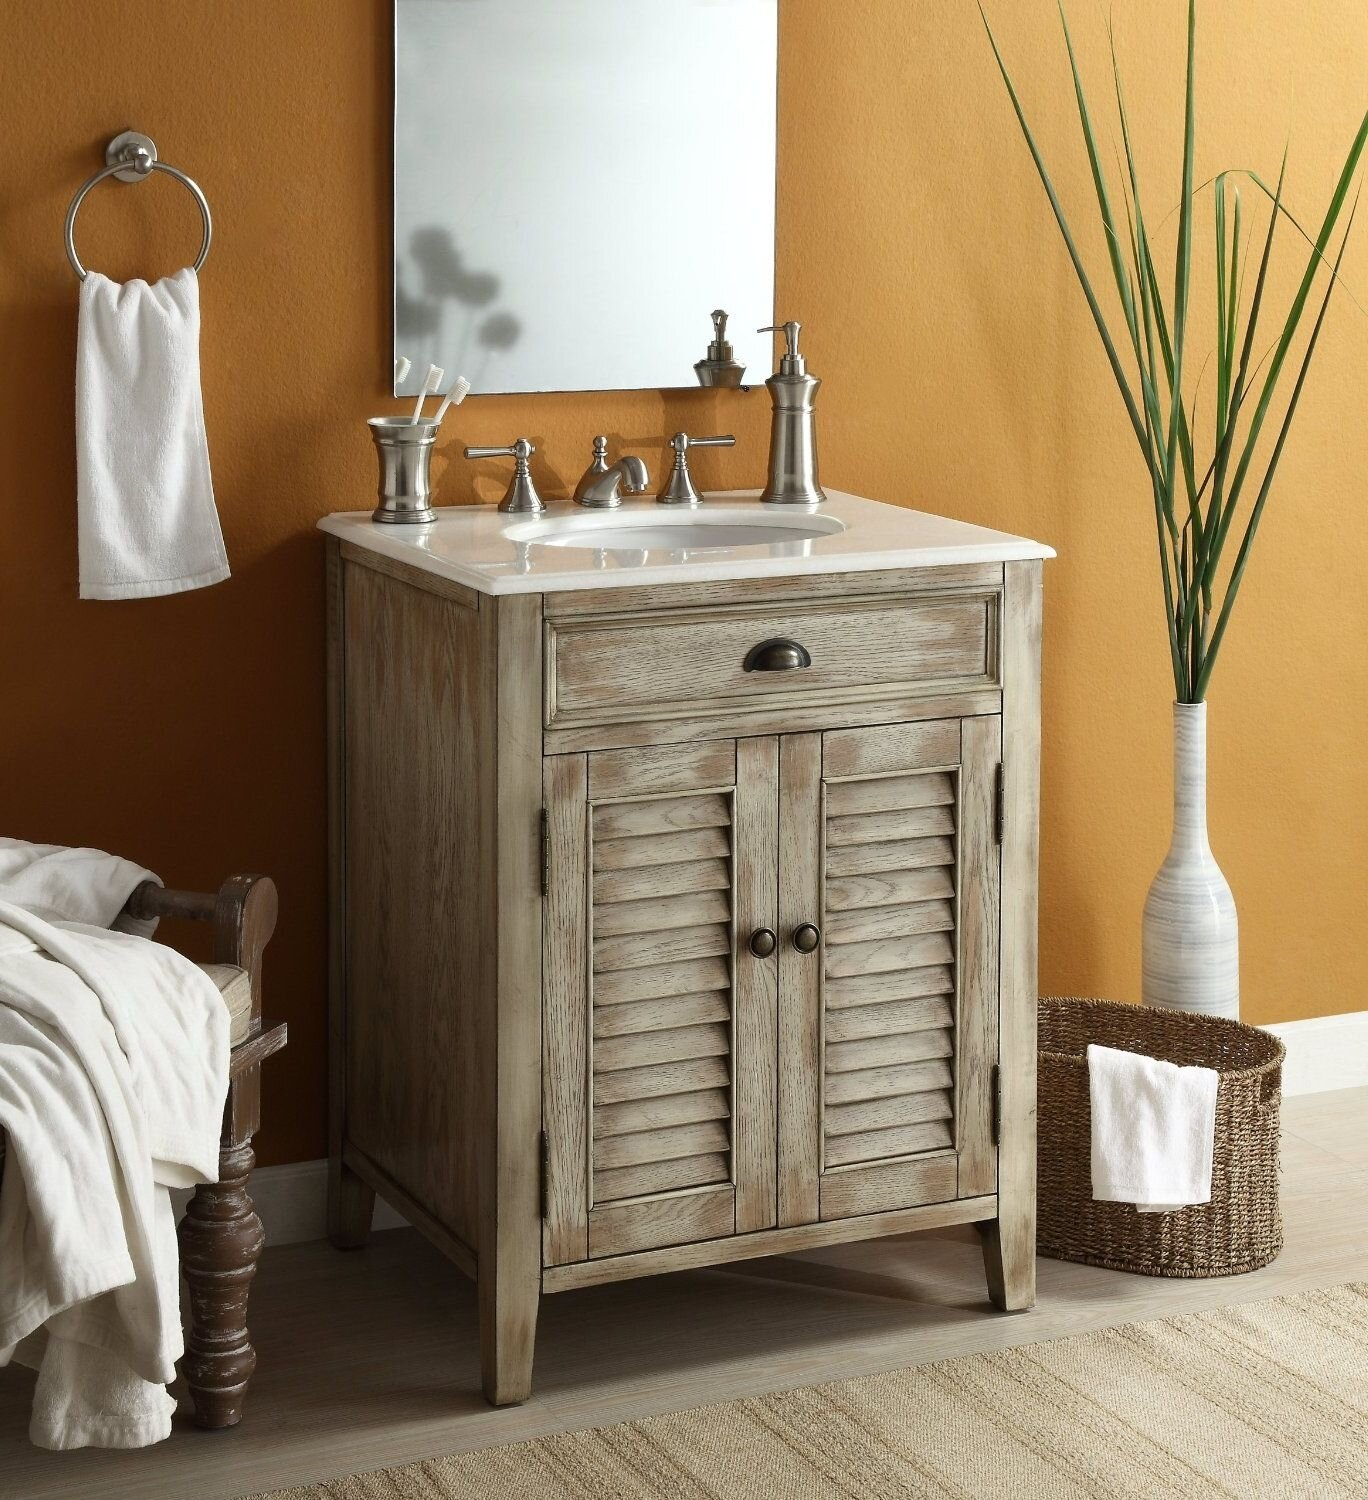 Fancy Bedroom Chairs Modern Zen Bedroom Rustic Chic Bedroom Decor Exclusive Bedroom Sets: Bathroom: Pottery Barn Vanity For Bathroom Cabinet Design Ideas